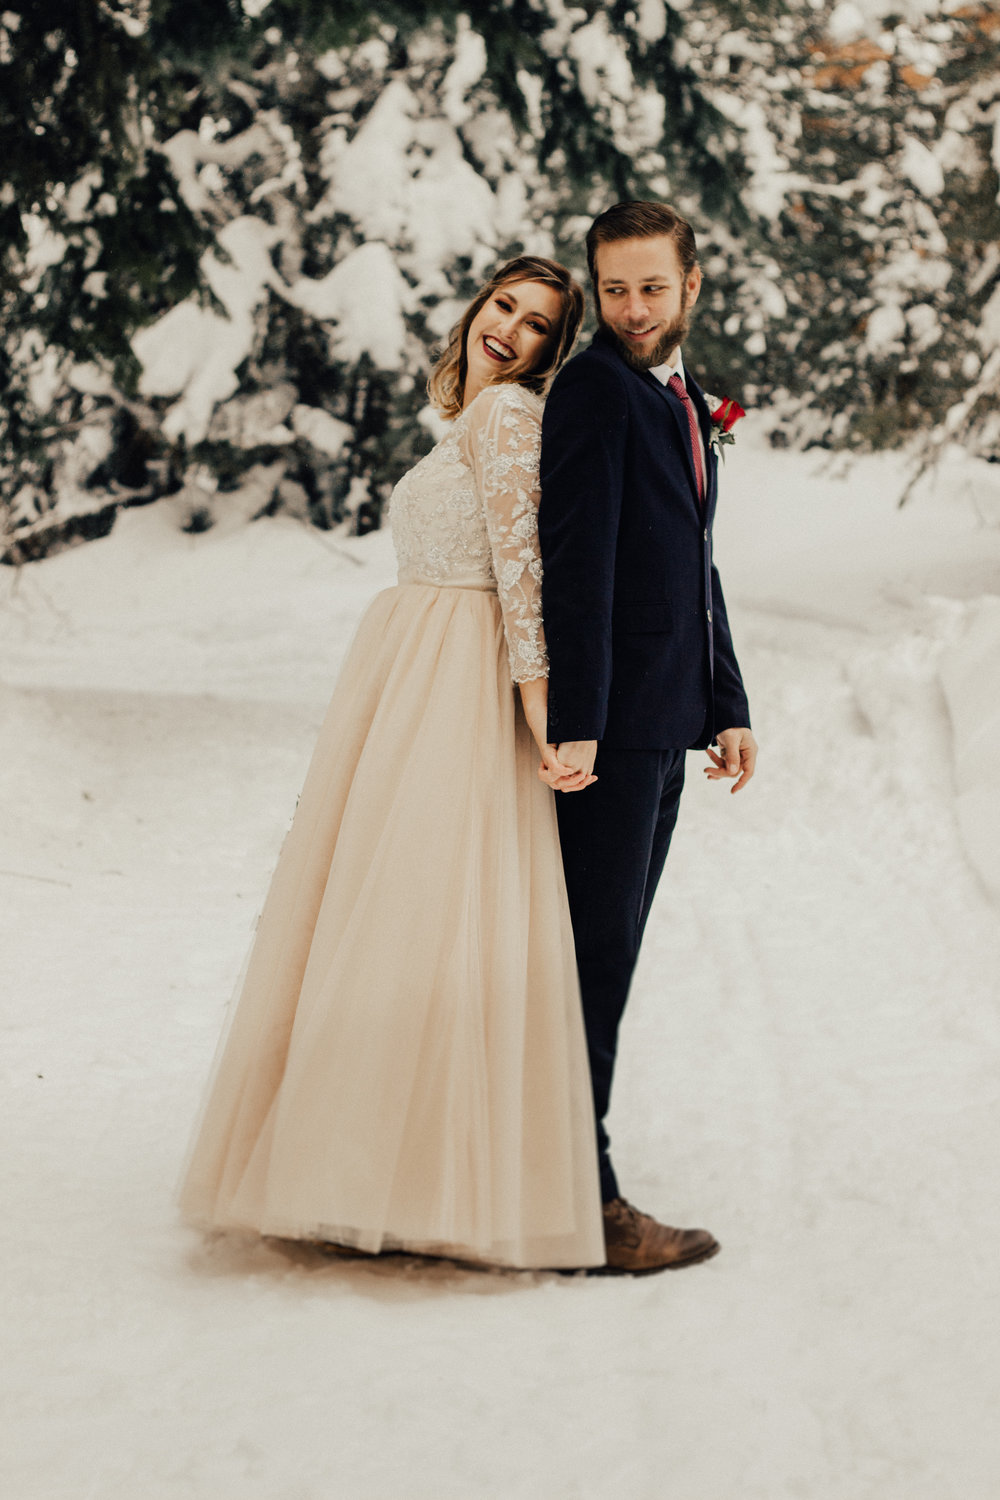 Styled-Winter-Elopement-130.jpg